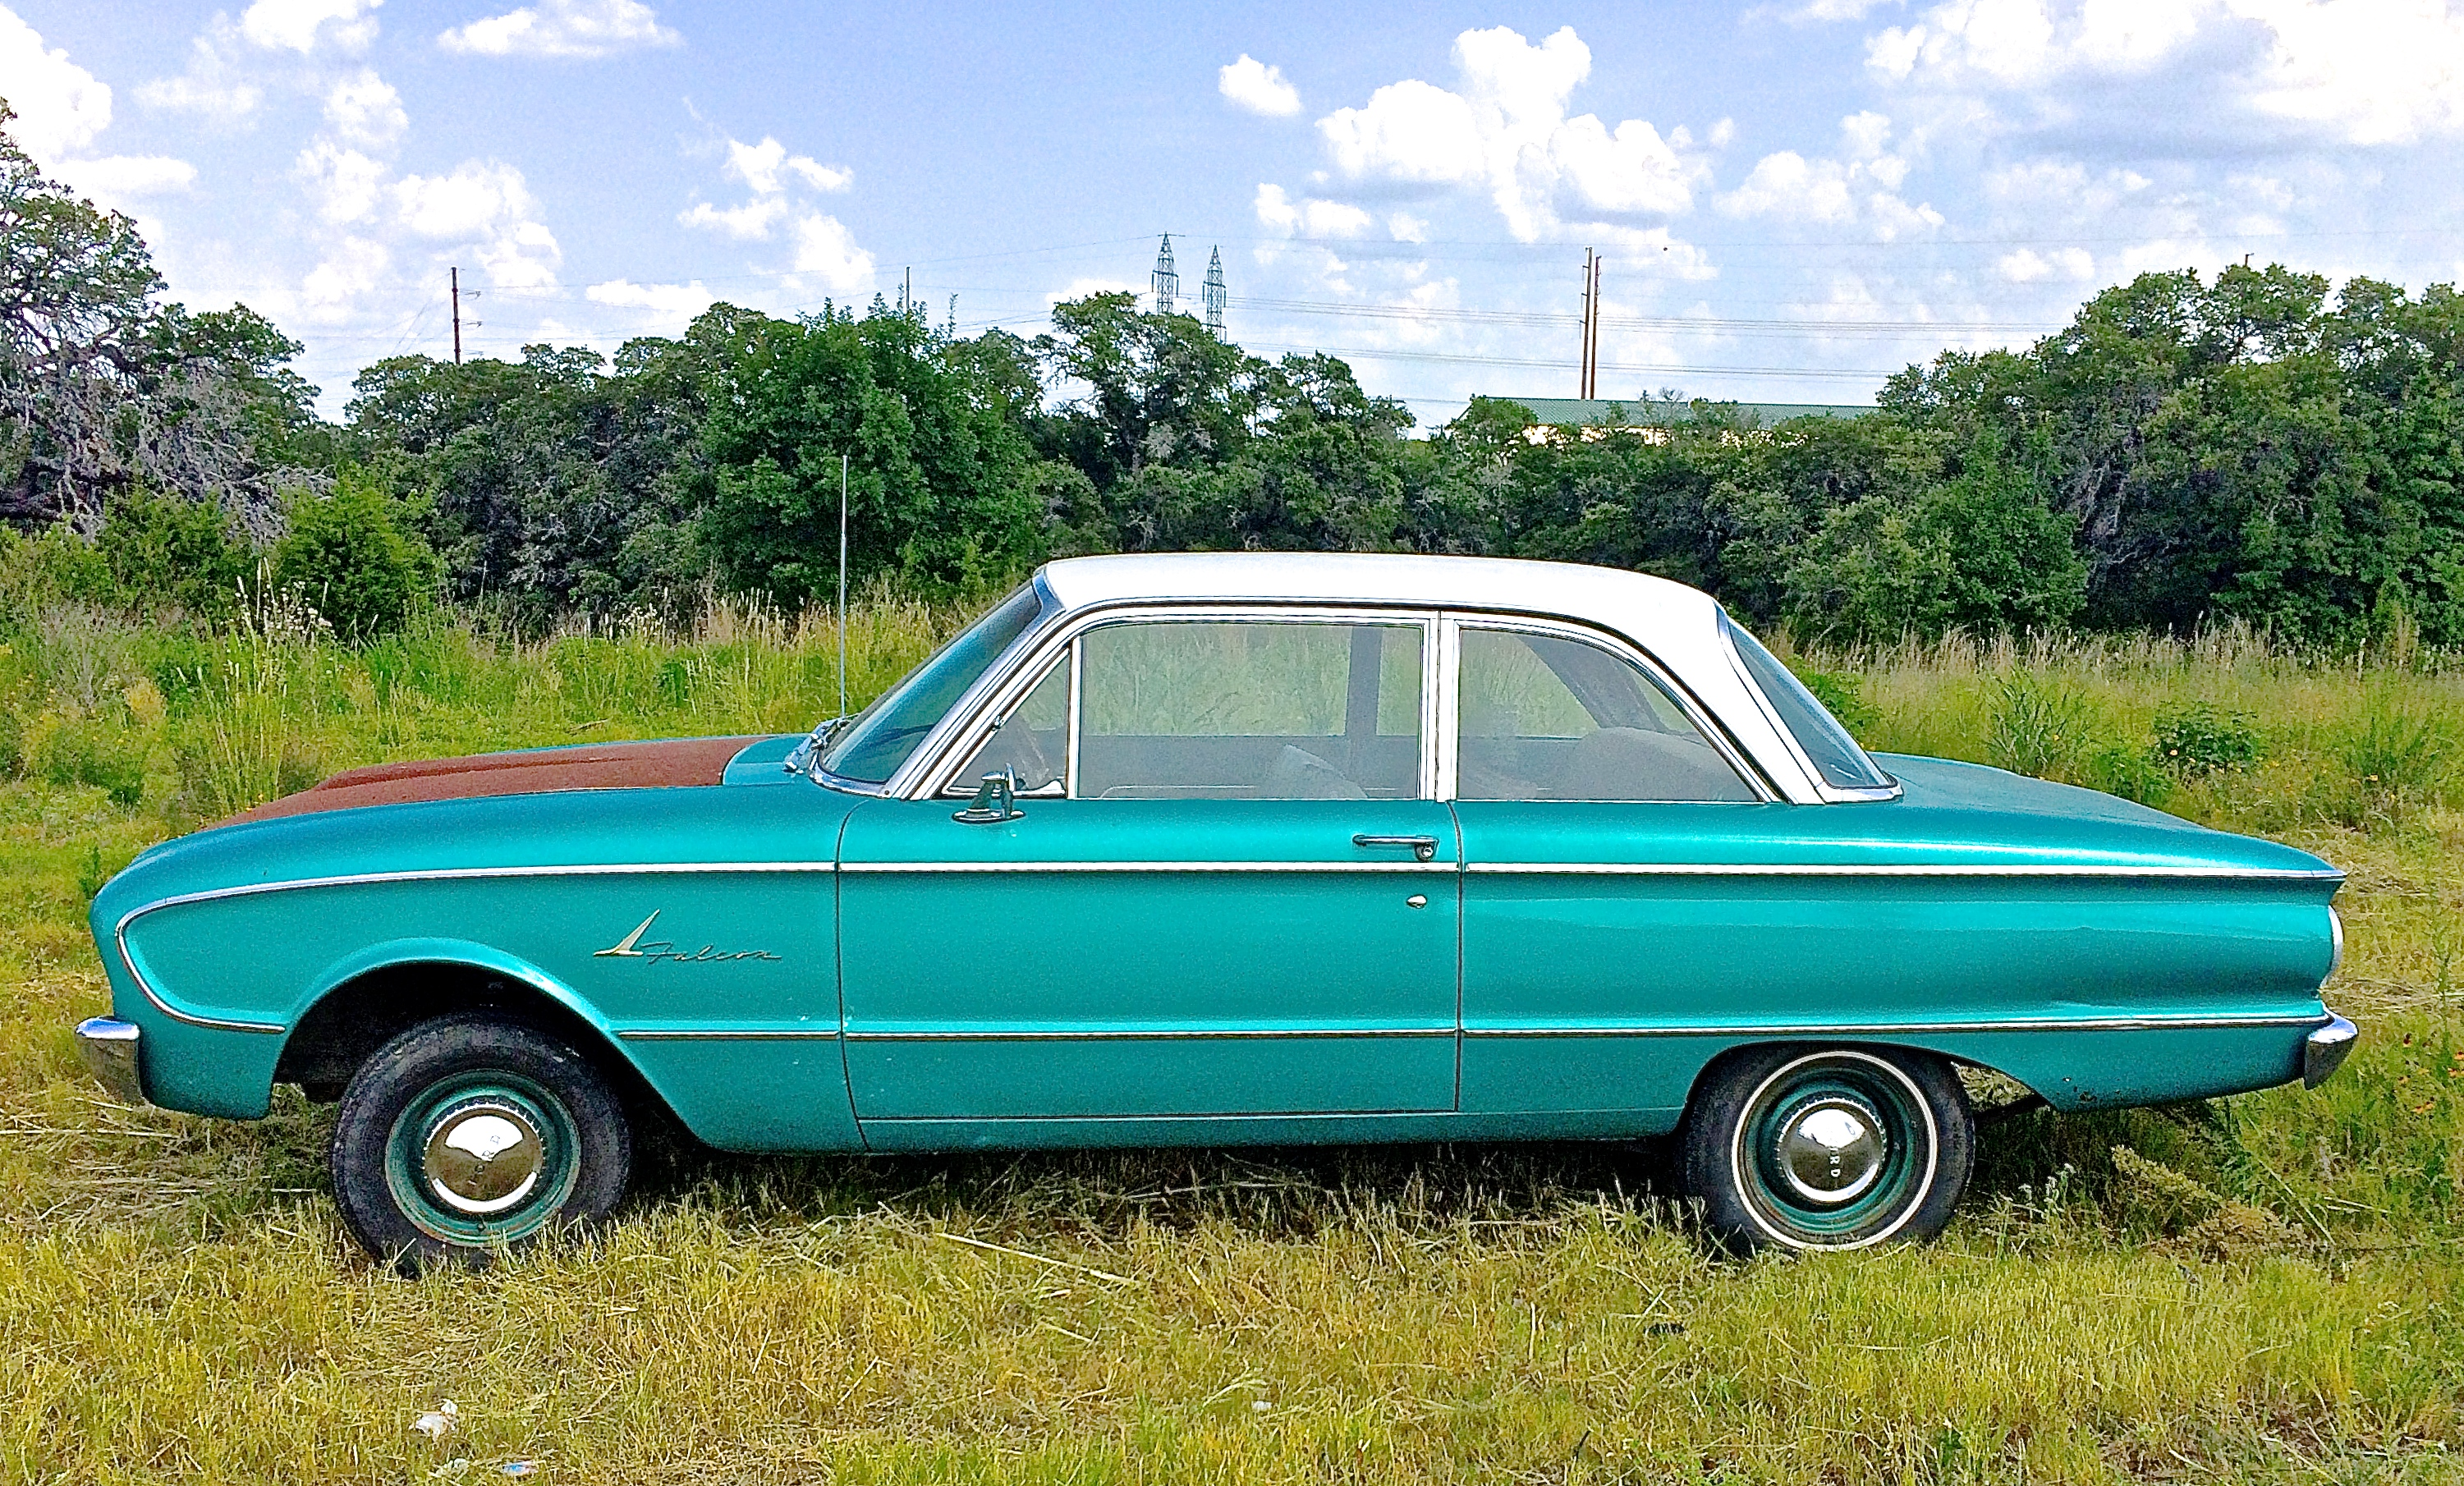 1961 ford falcon for sale racingjunk classifieds - 1961 Ford Falcon Tudor On Hwy 620